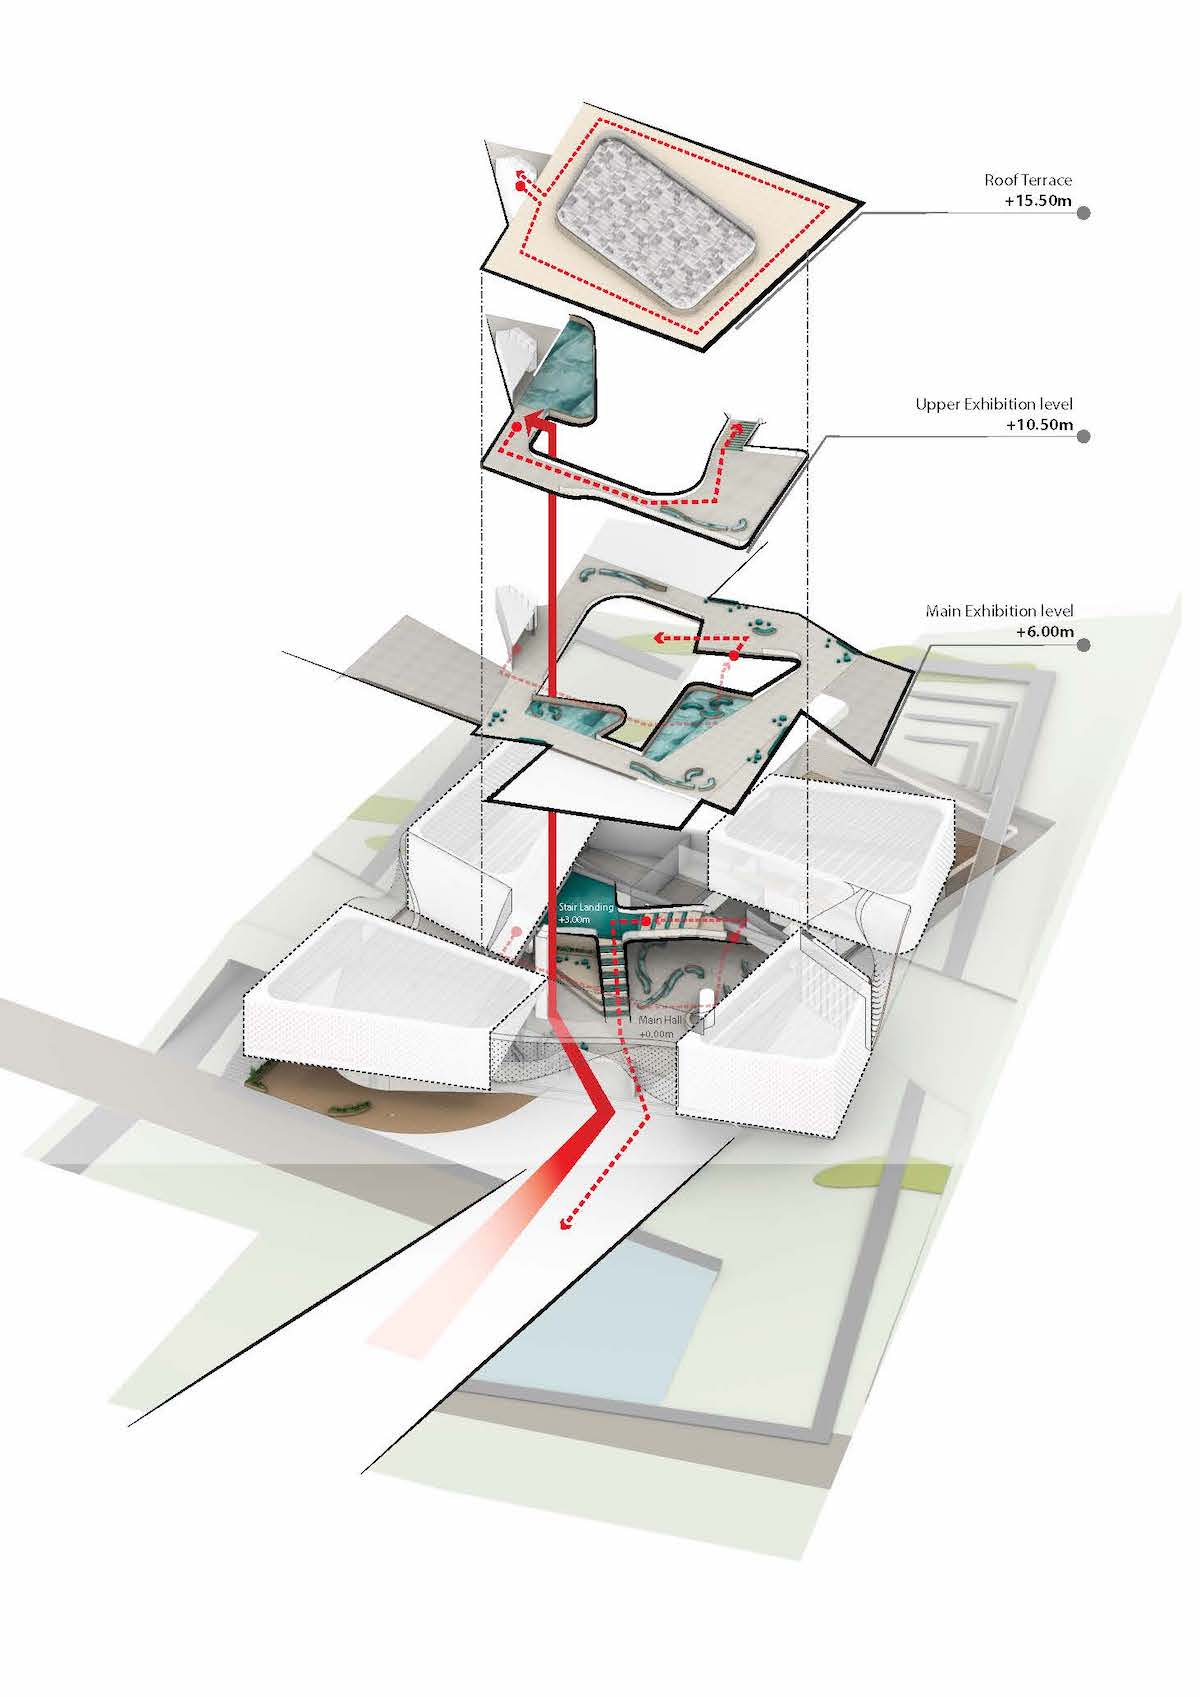 Axonometric Drawing of Chungnam Art Museum by UNStudio and DA Group